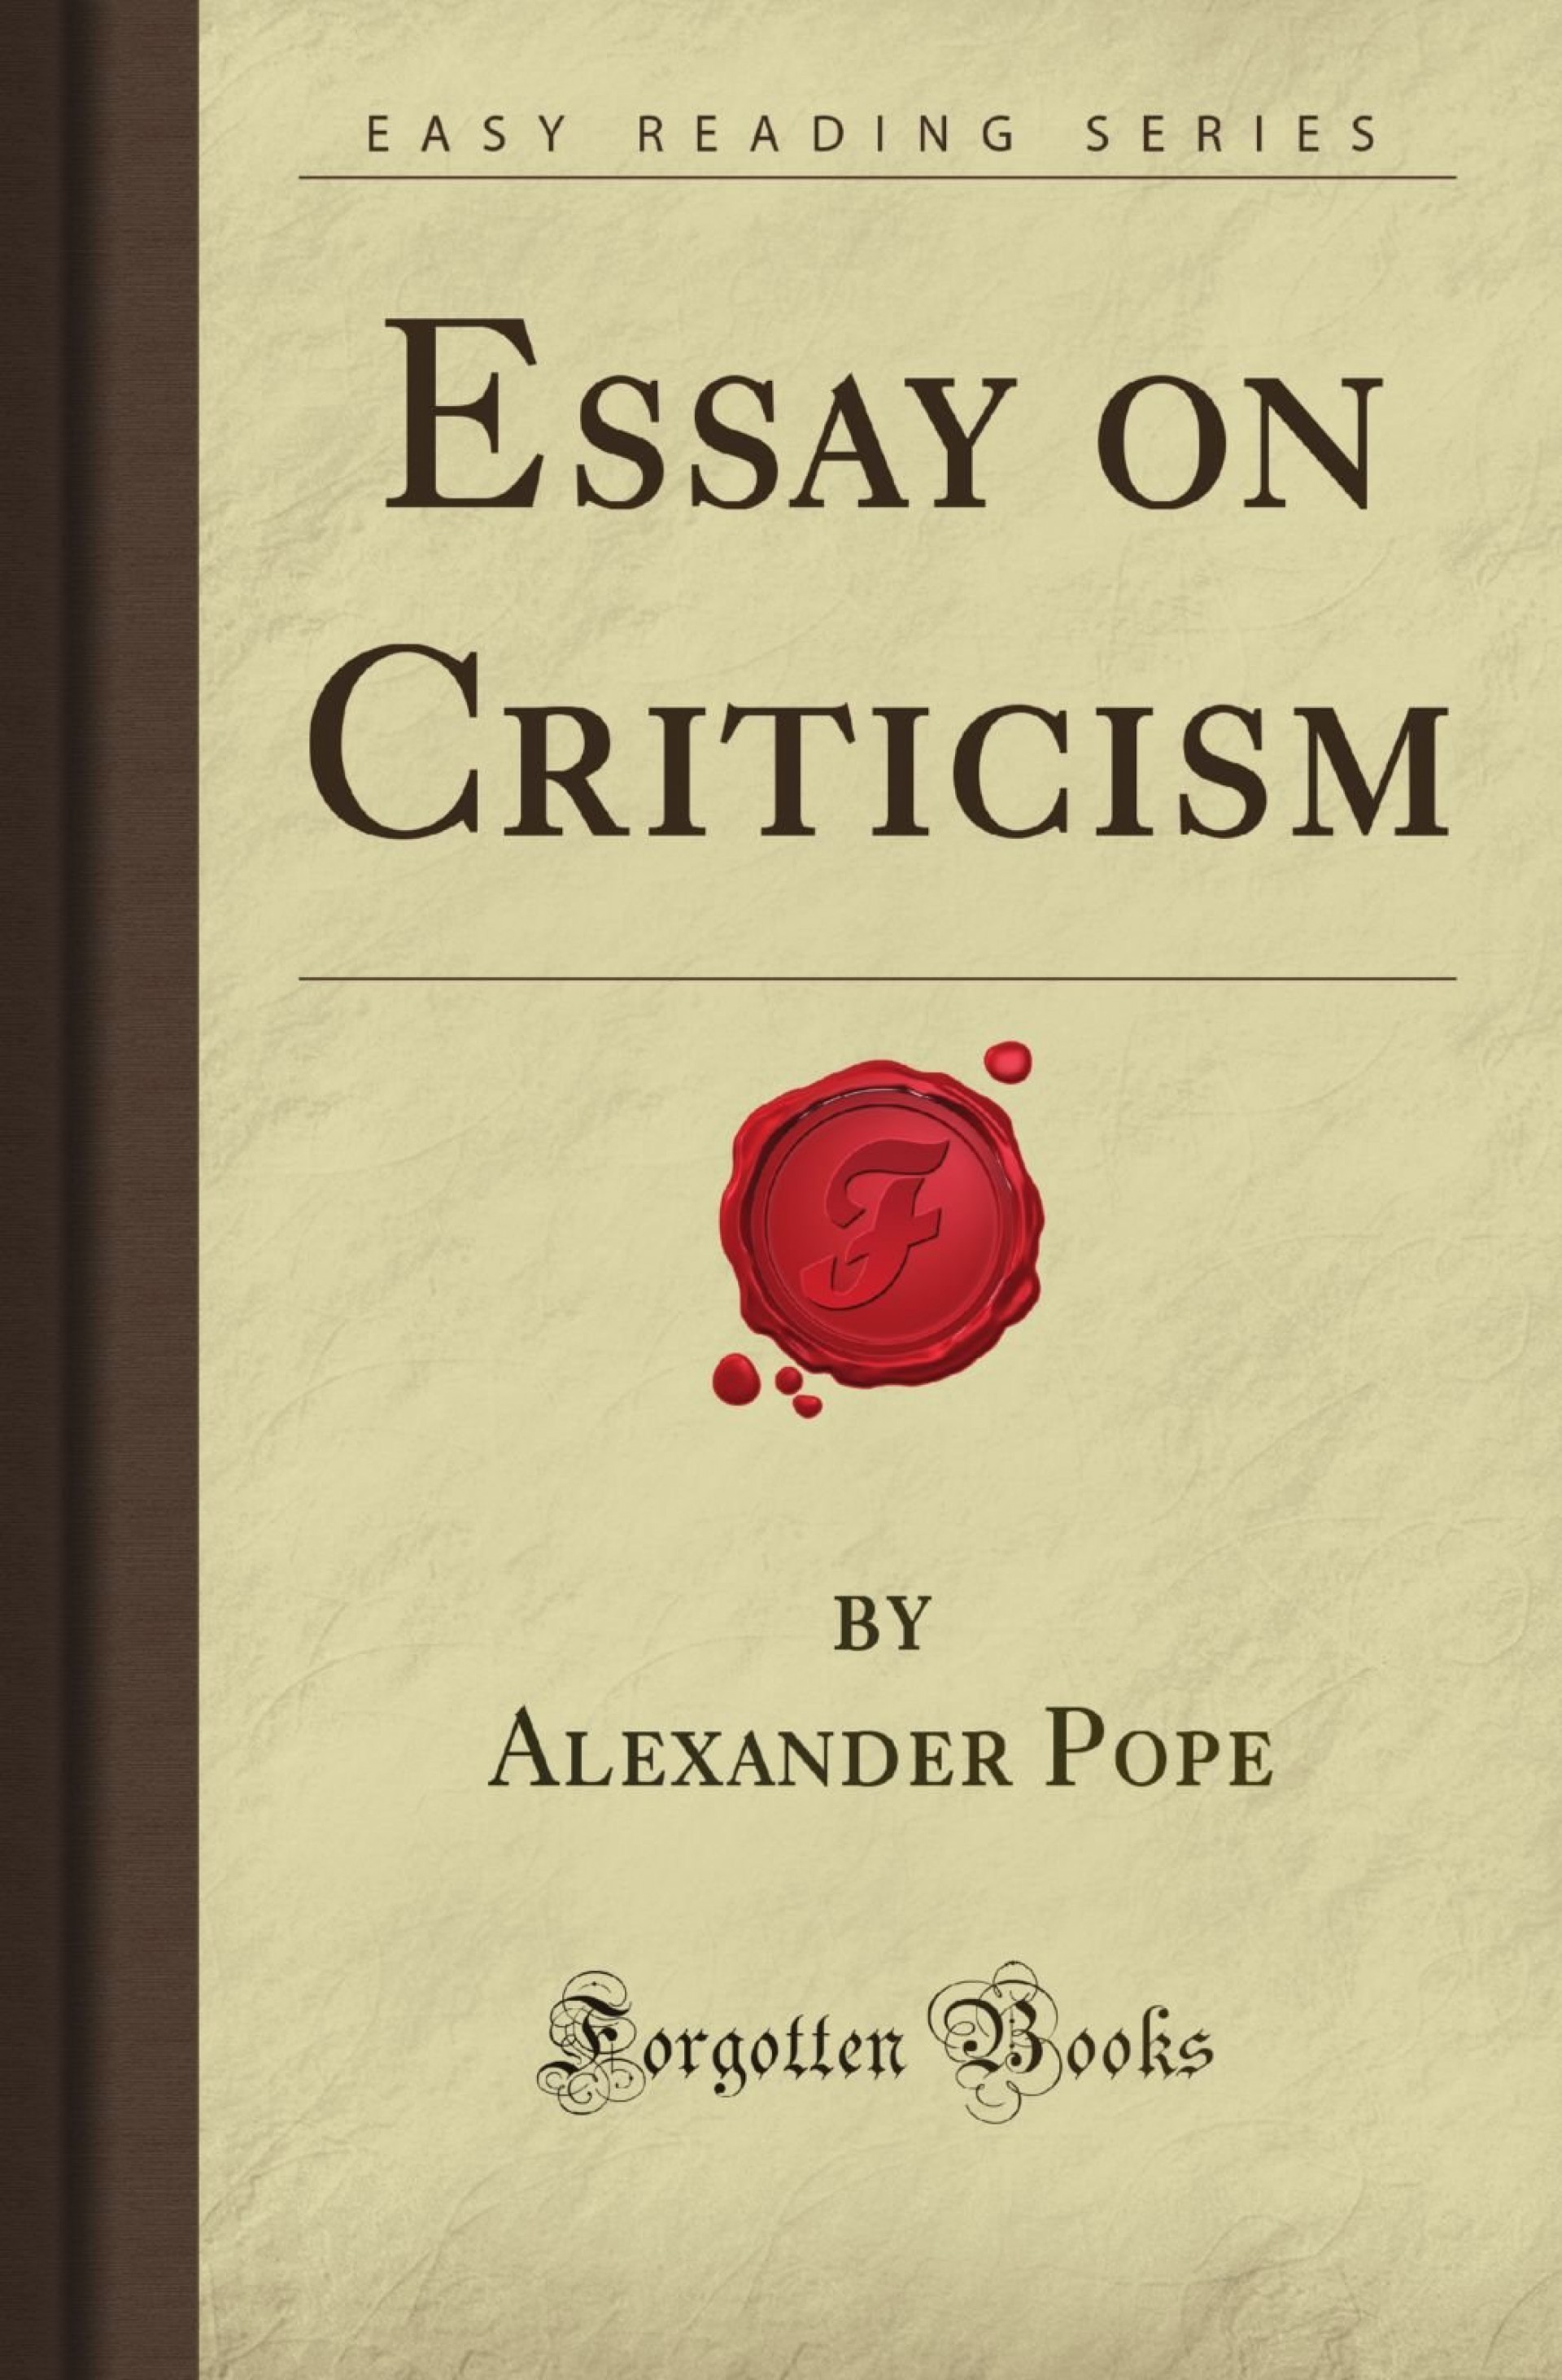 001 An Essay On Criticism Example Sensational Lines 233 To 415 Part 3 Analysis Pdf 1920